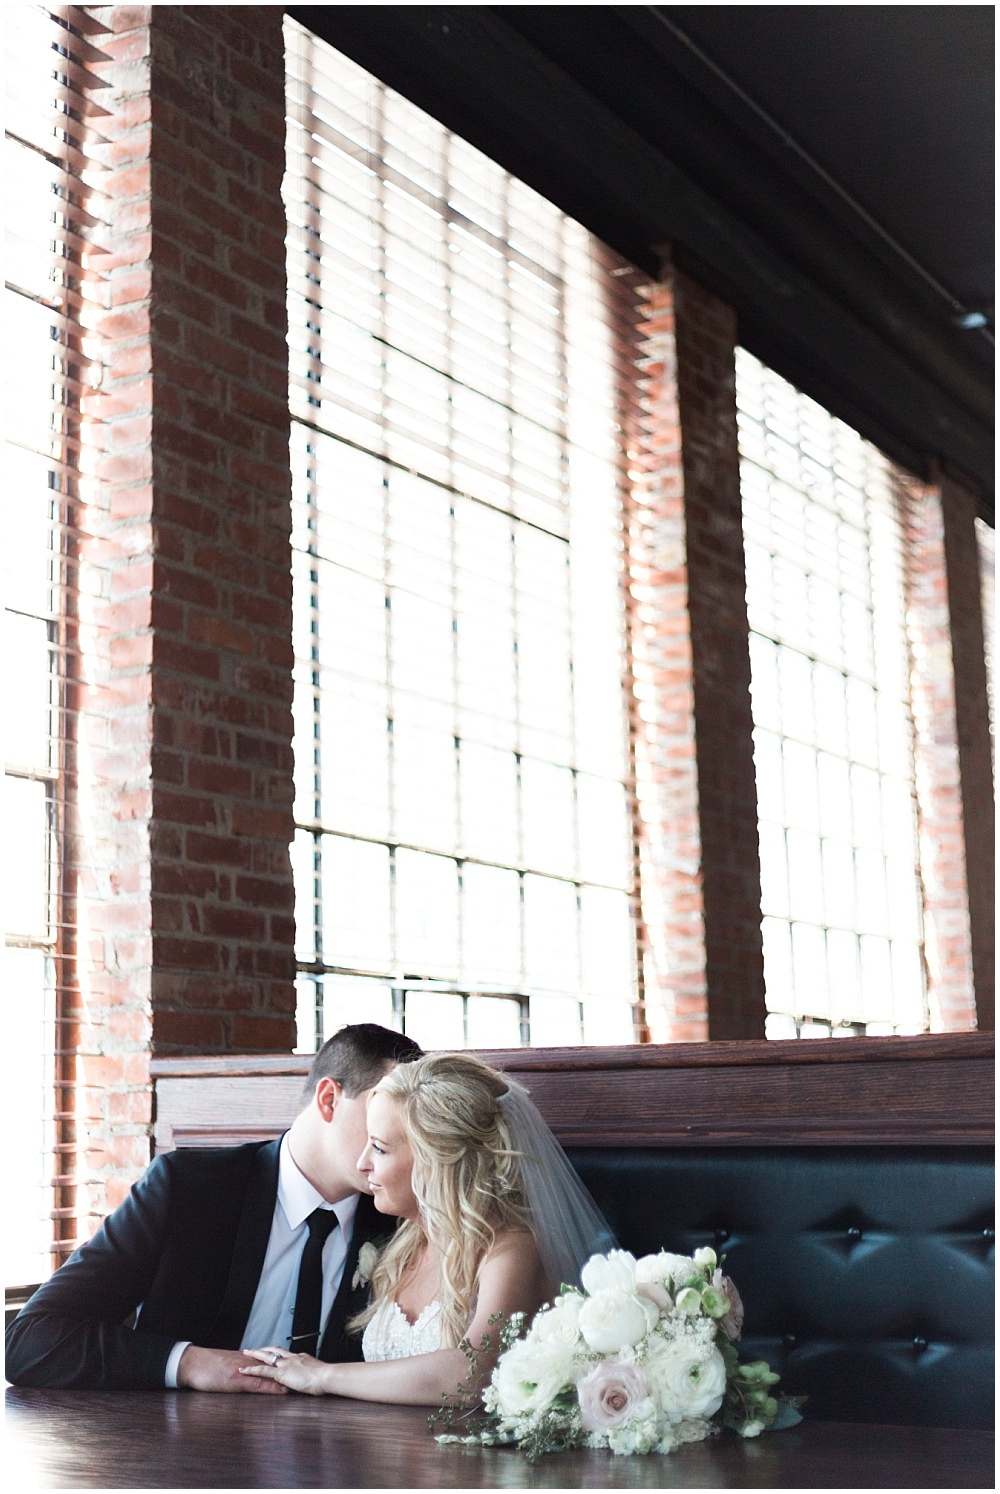 Bride and Groom | Downtown Indianapolis Wedding by Gabrielle Cheikh Photography & Jessica Dum Wedding Coordination